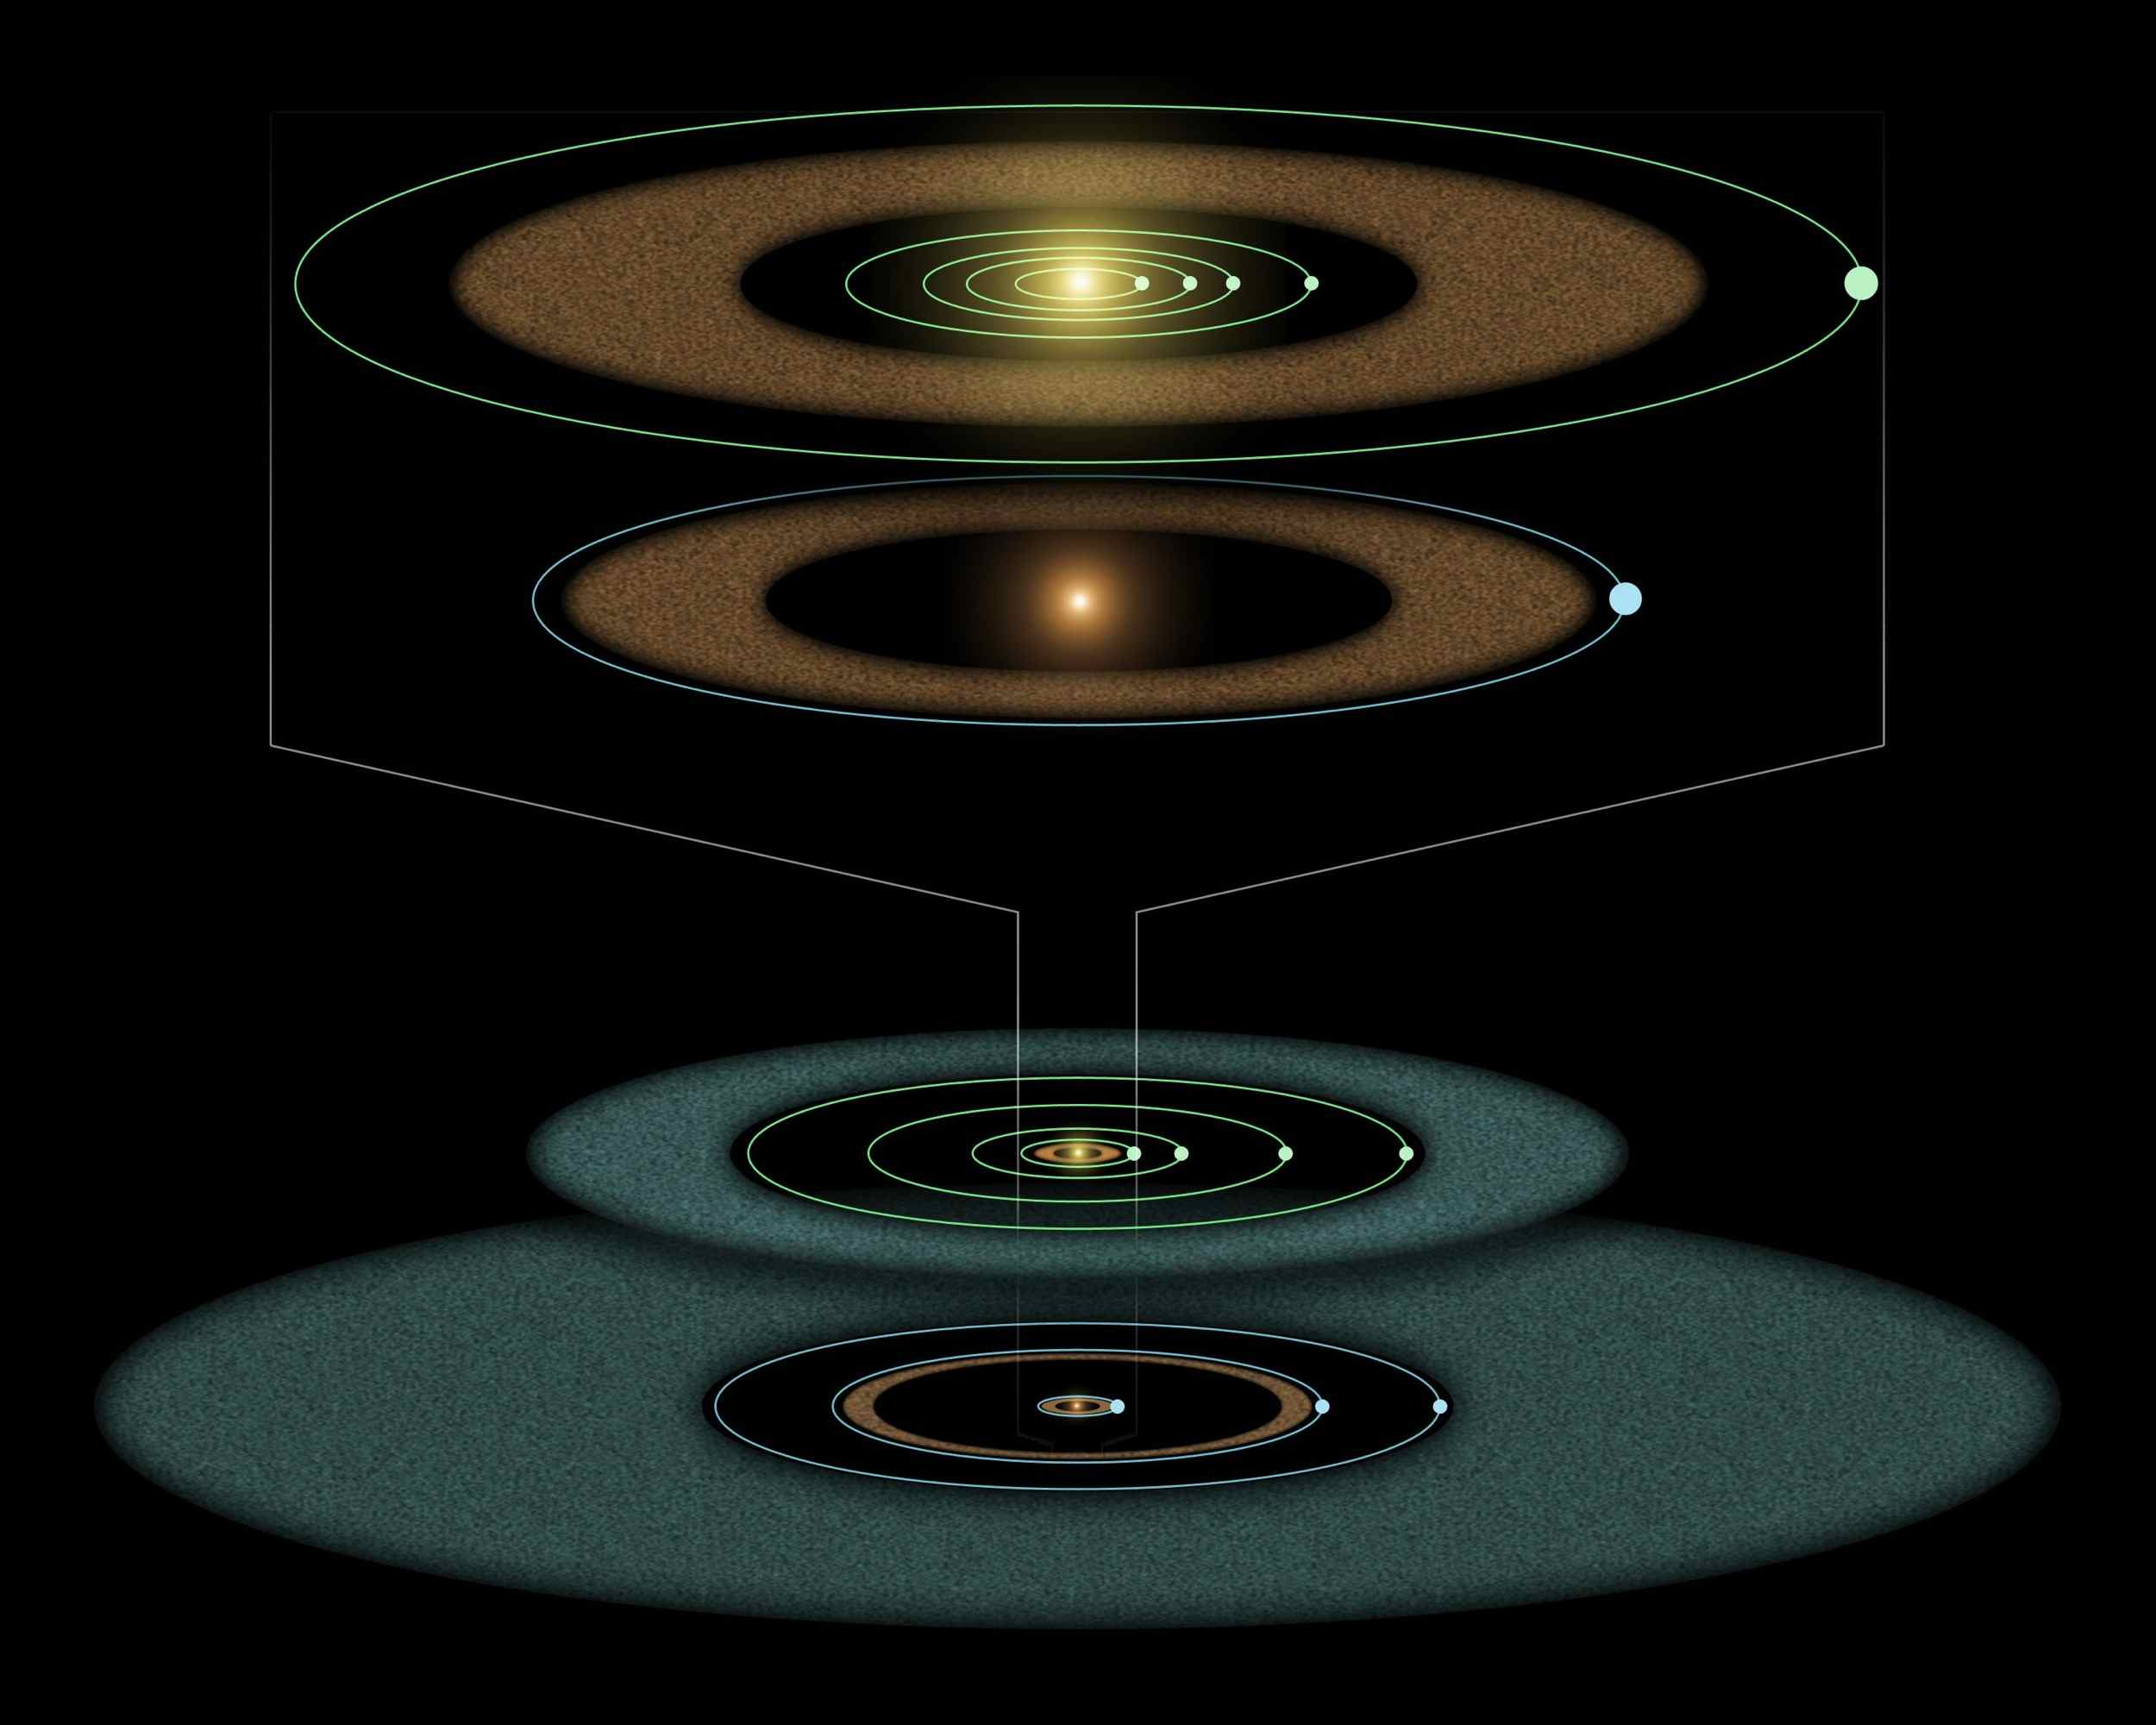 This artist's diagram based on observations from NASA's Spitzer Space Telescope compares the Epsilon Eridani system to our own solar system. The two systems are structure